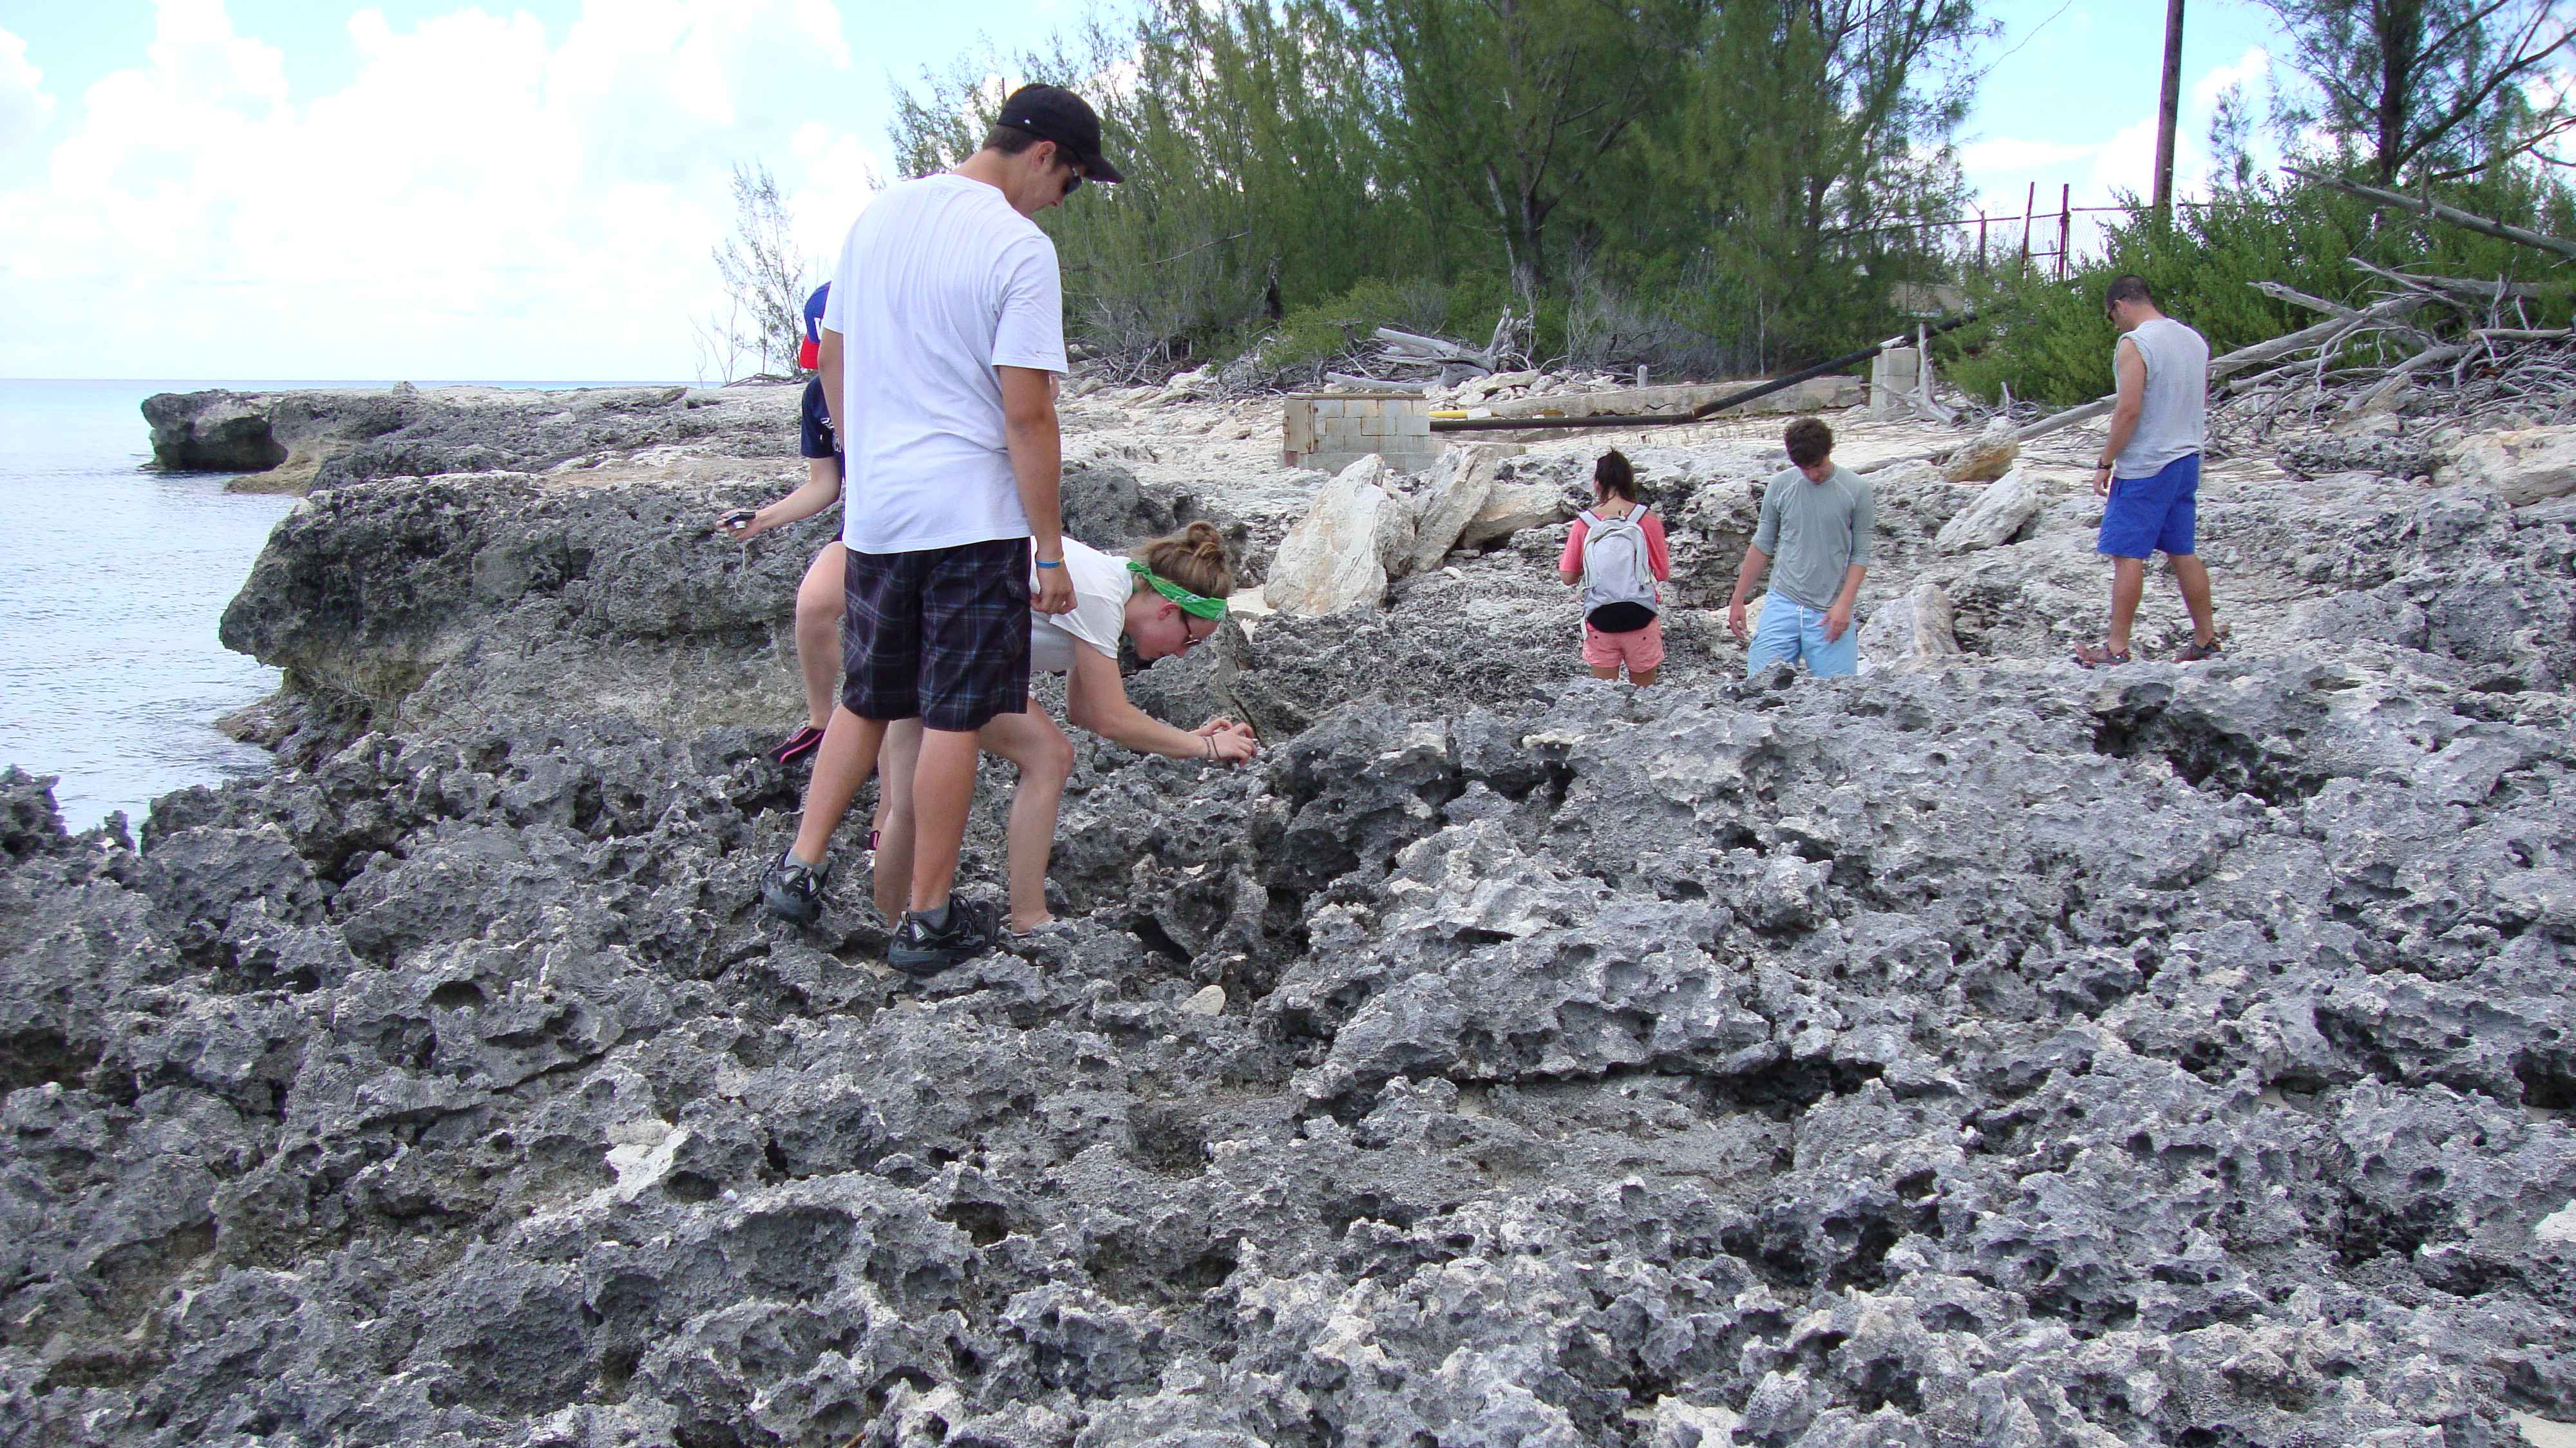 Exploring a fossil coral reef